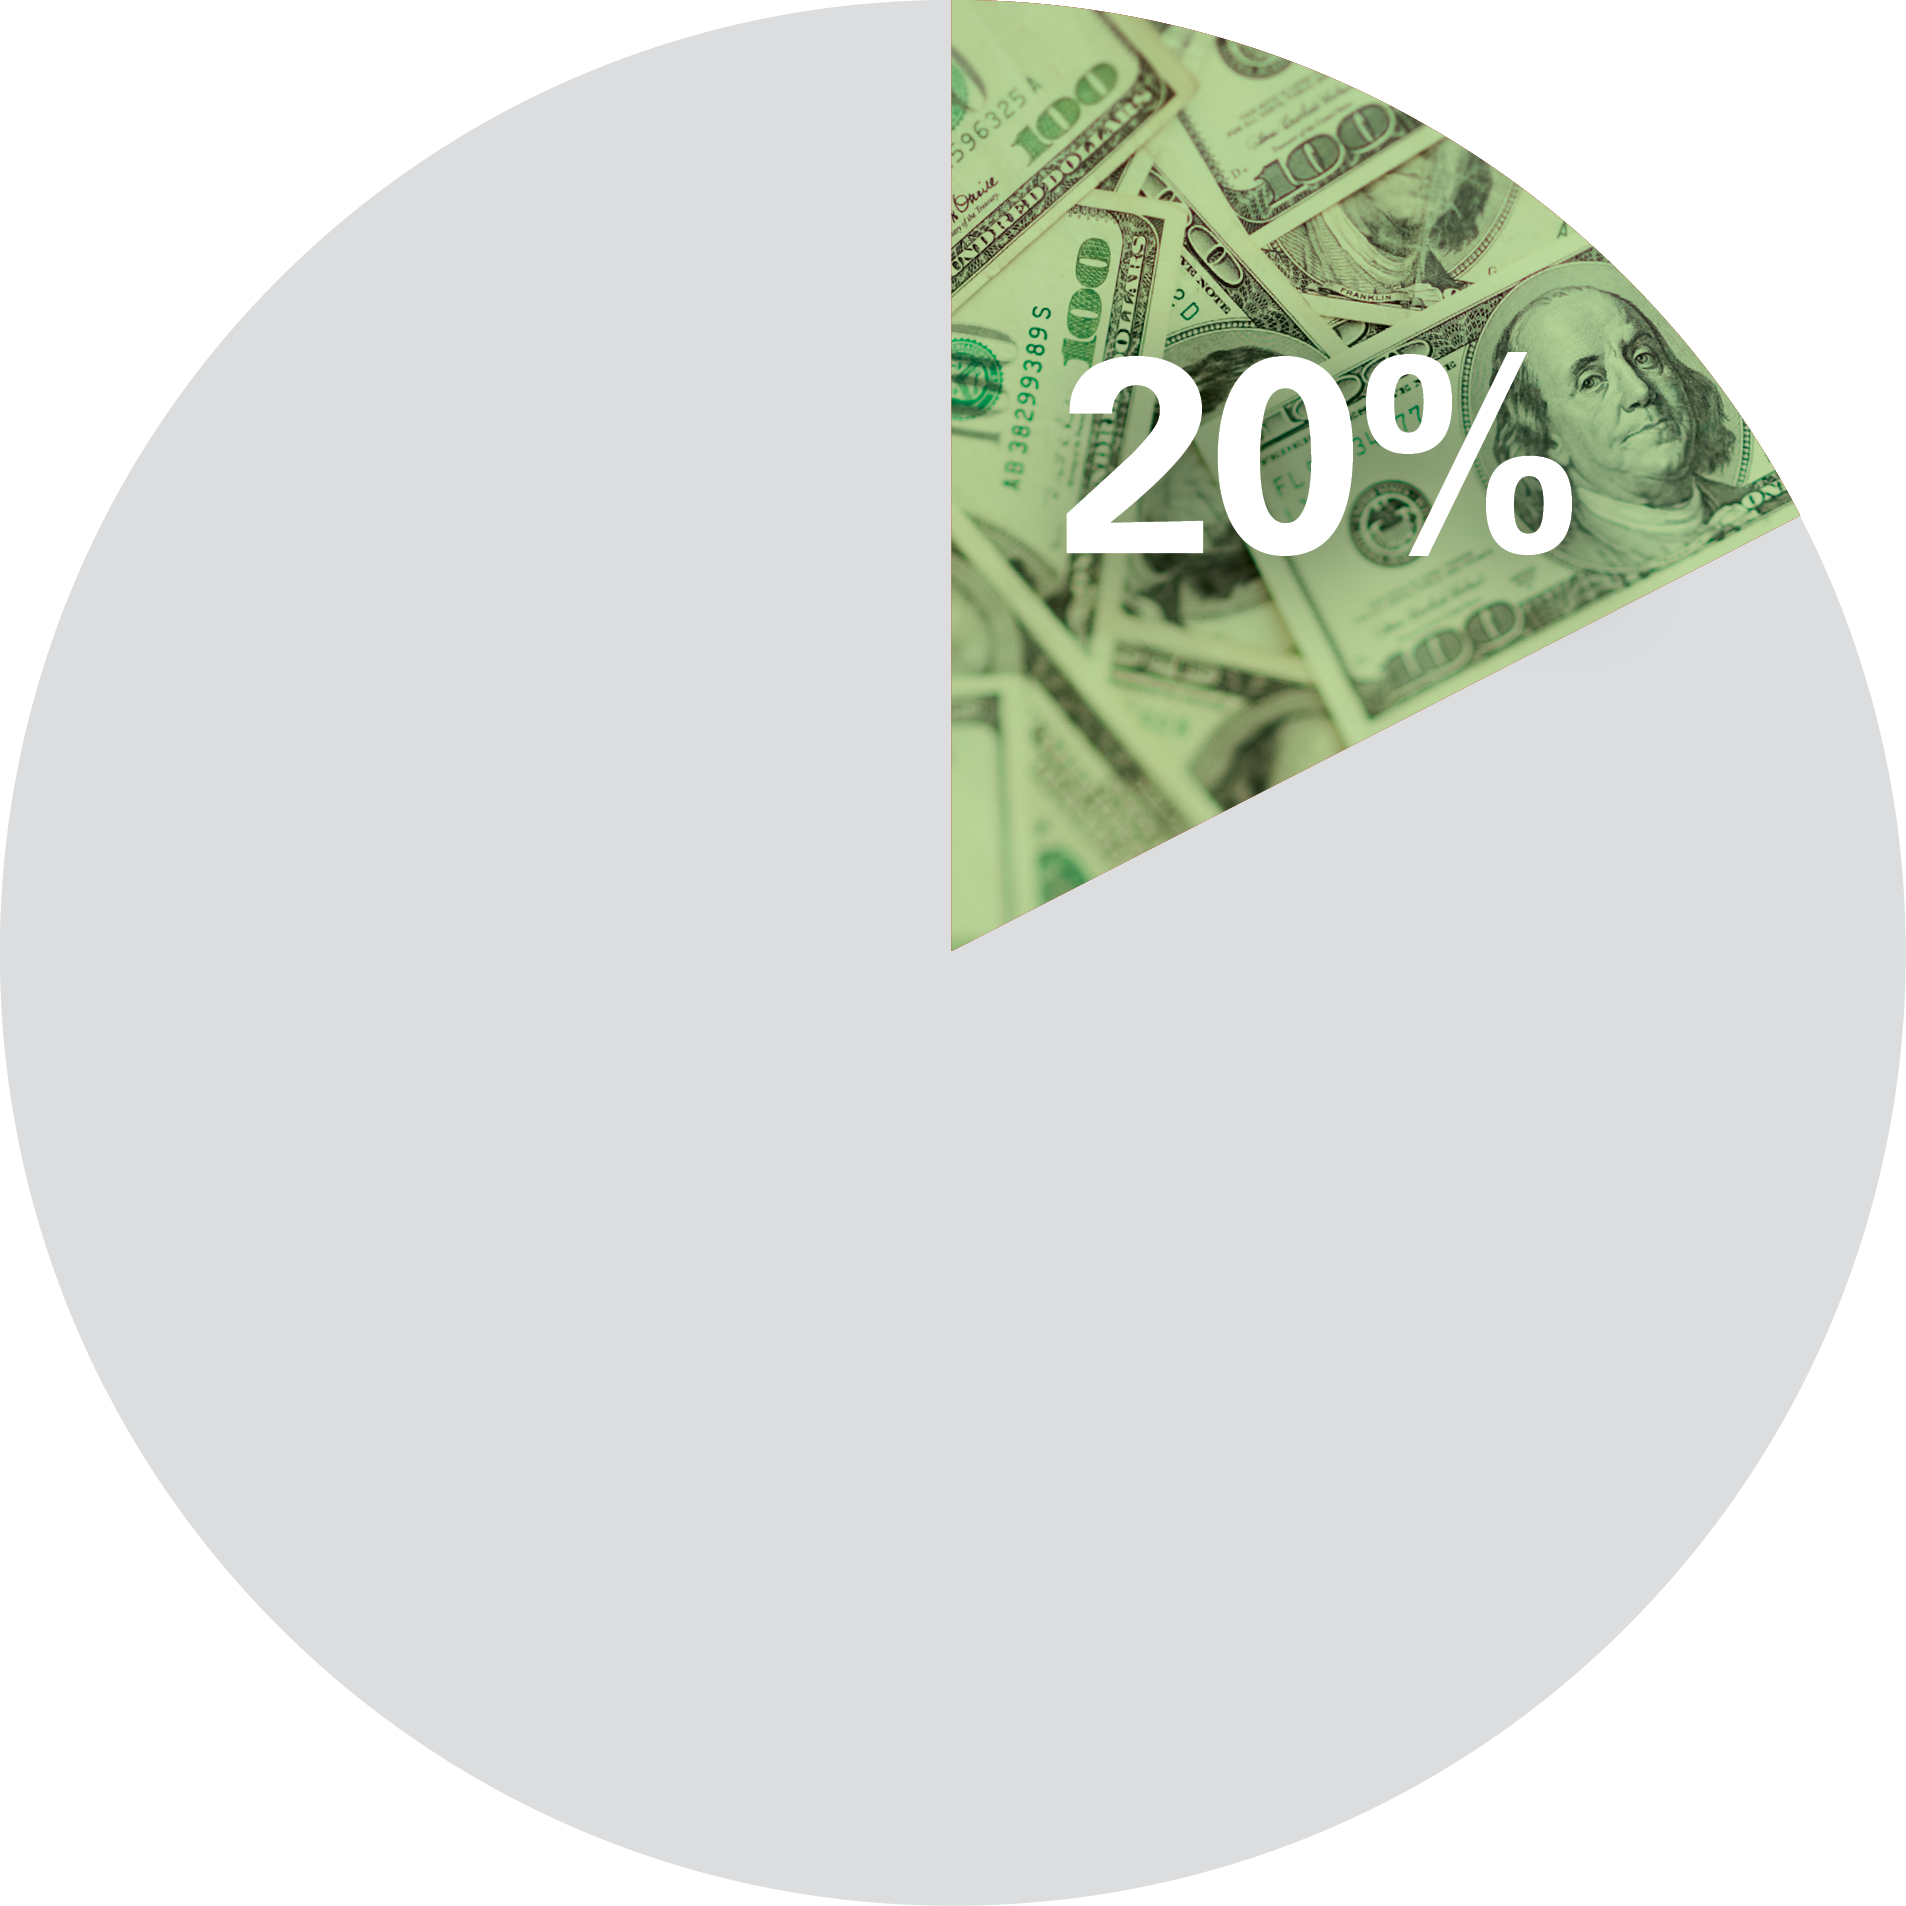 Pie Chart with 20% filled